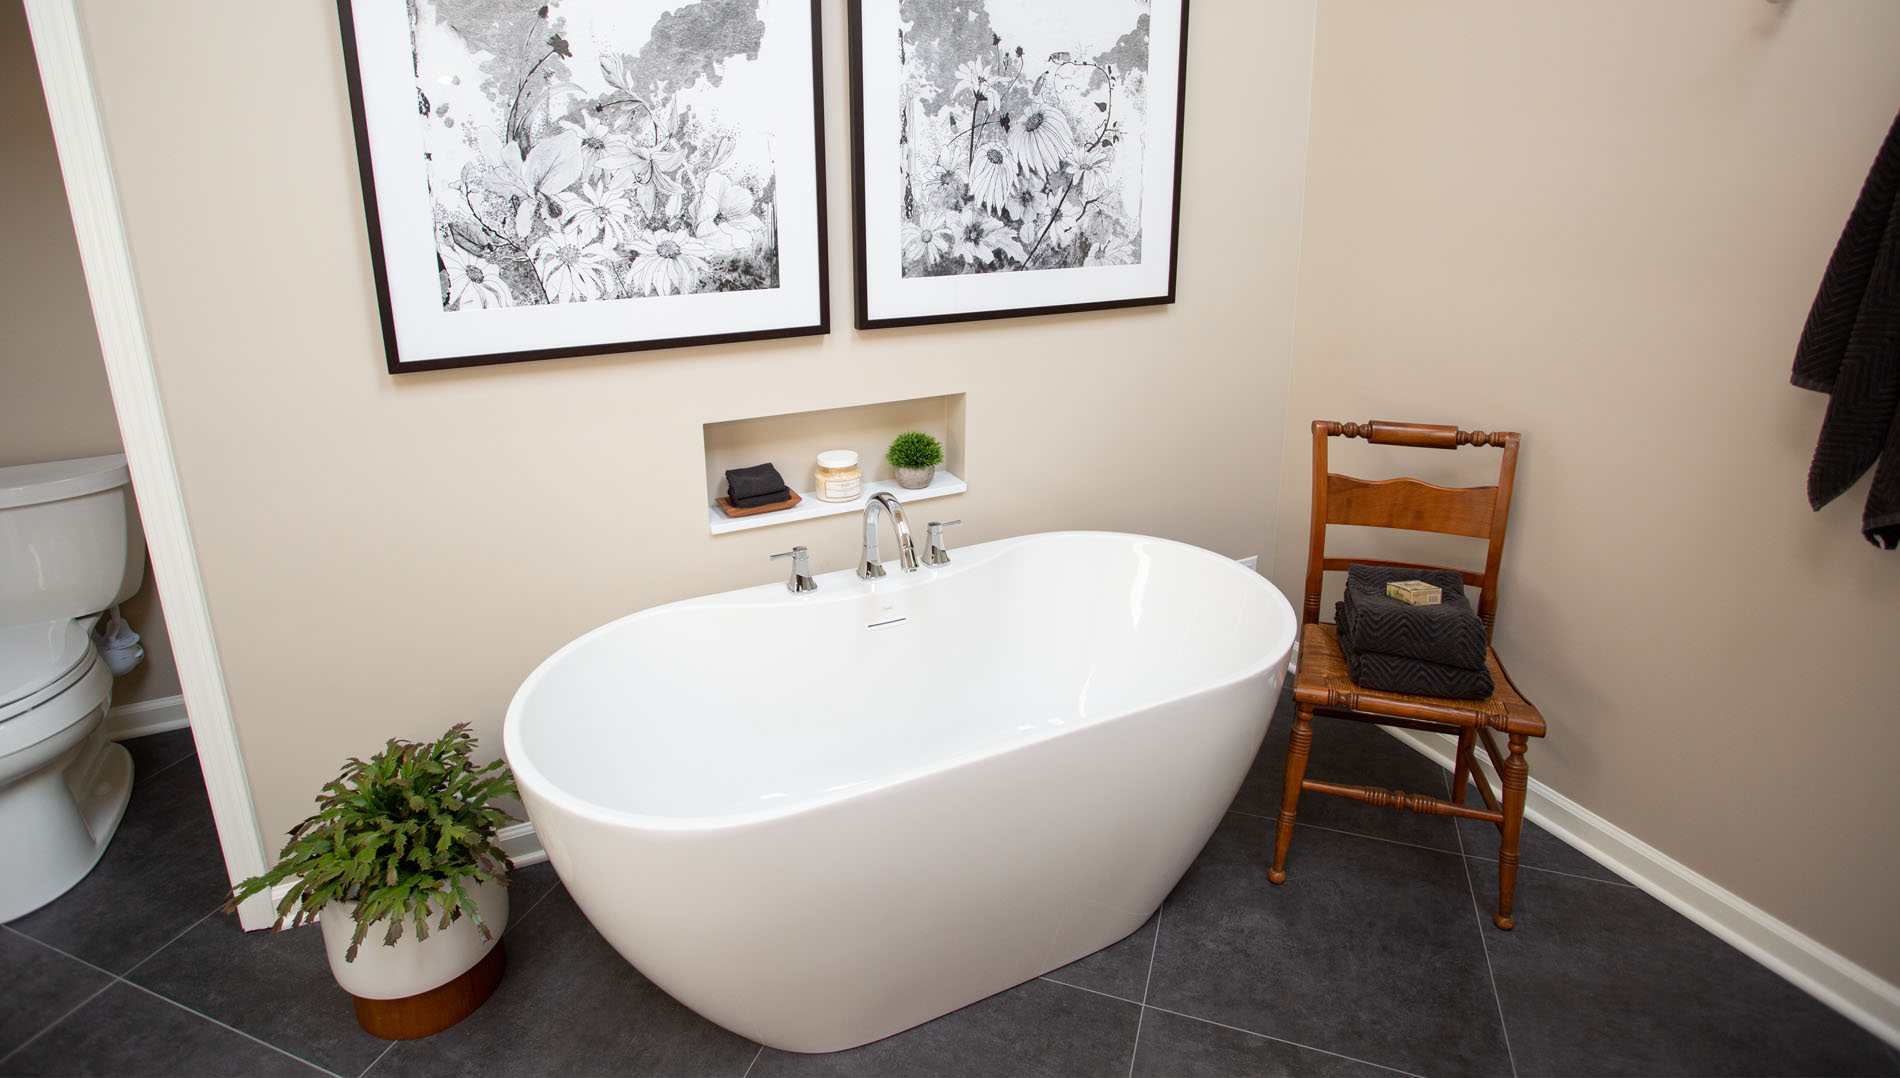 Stand alone white oval bathtub with small niche in wall parallel to the fixtures of tub.